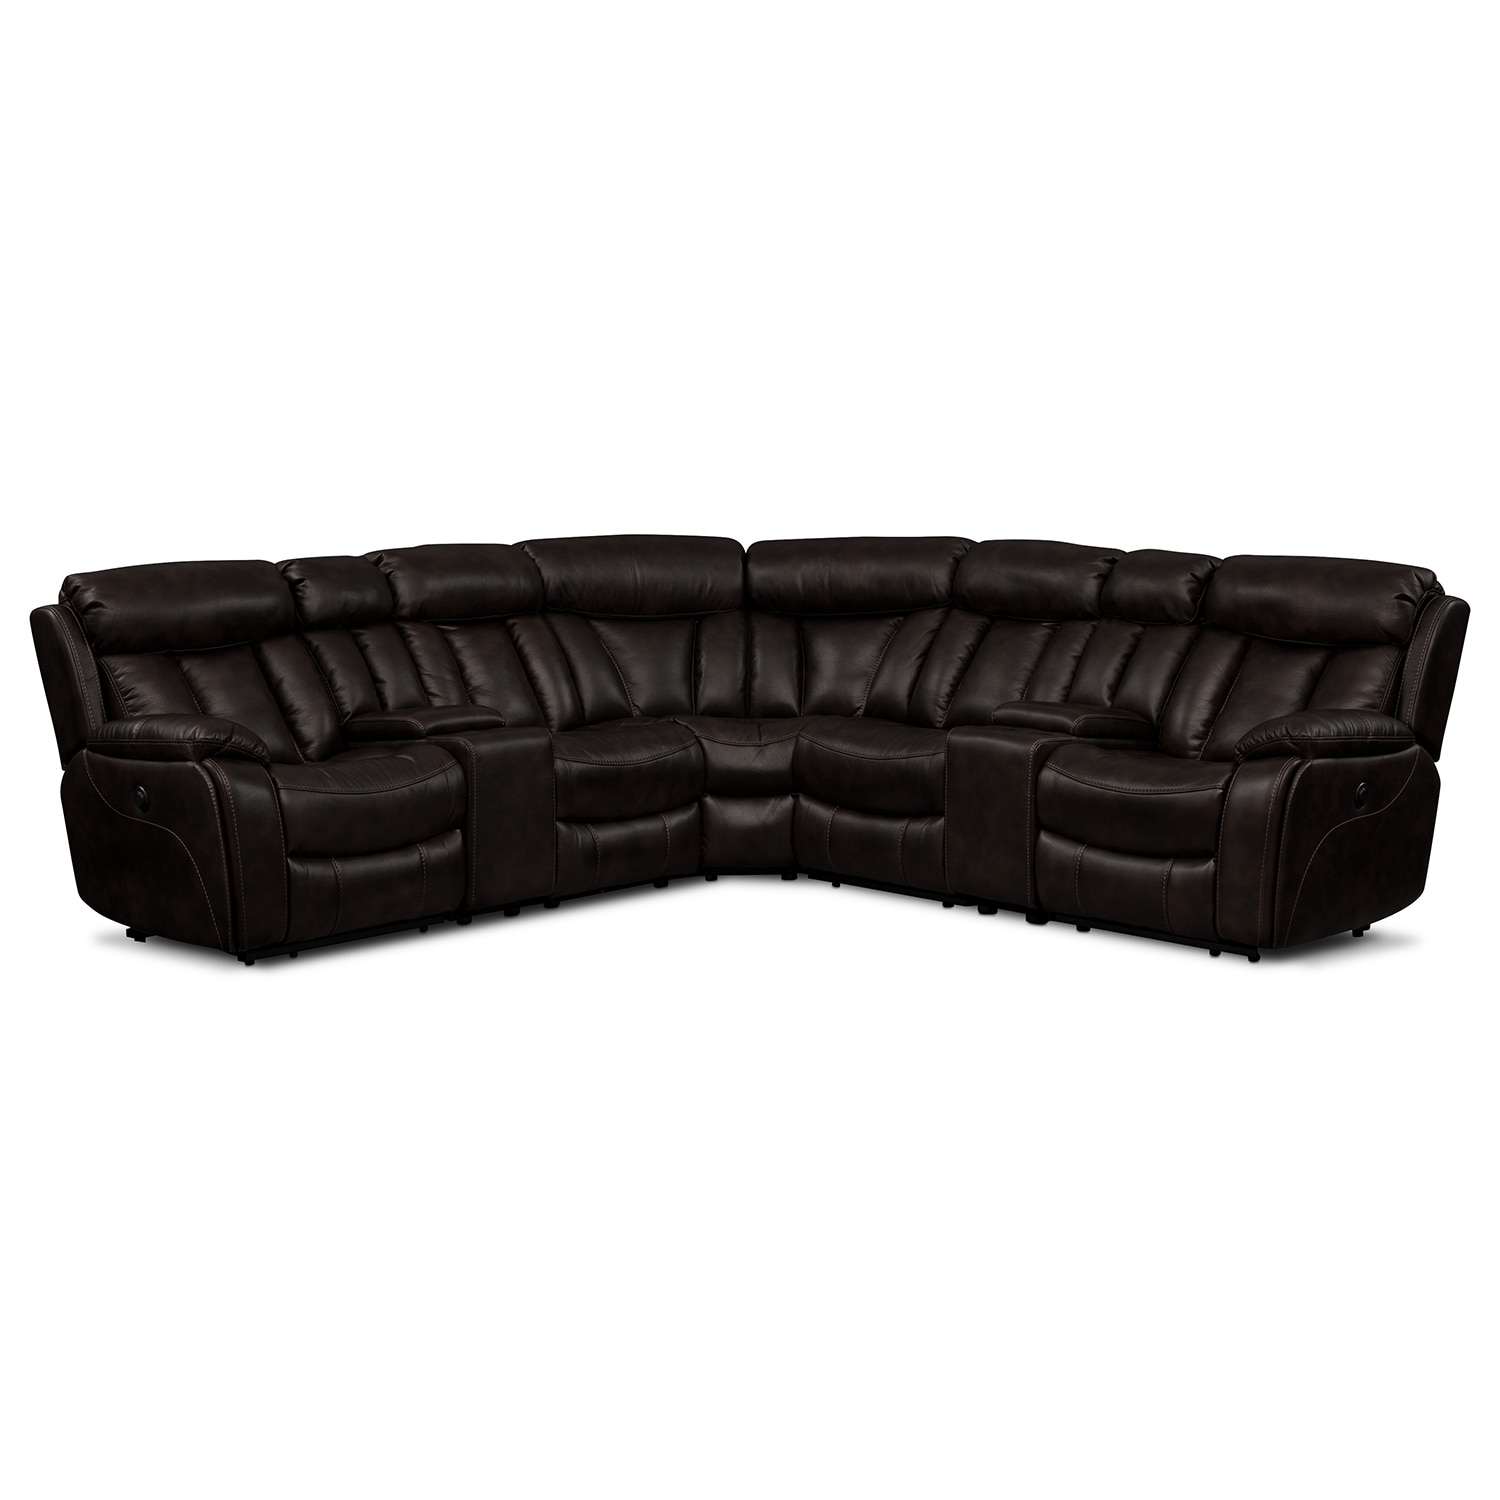 Diablo 7-Piece Power Reclining Sectional with Armless Power Chair - Walnut by One80  sc 1 st  American Signature Furniture : power recliner stopped working - islam-shia.org